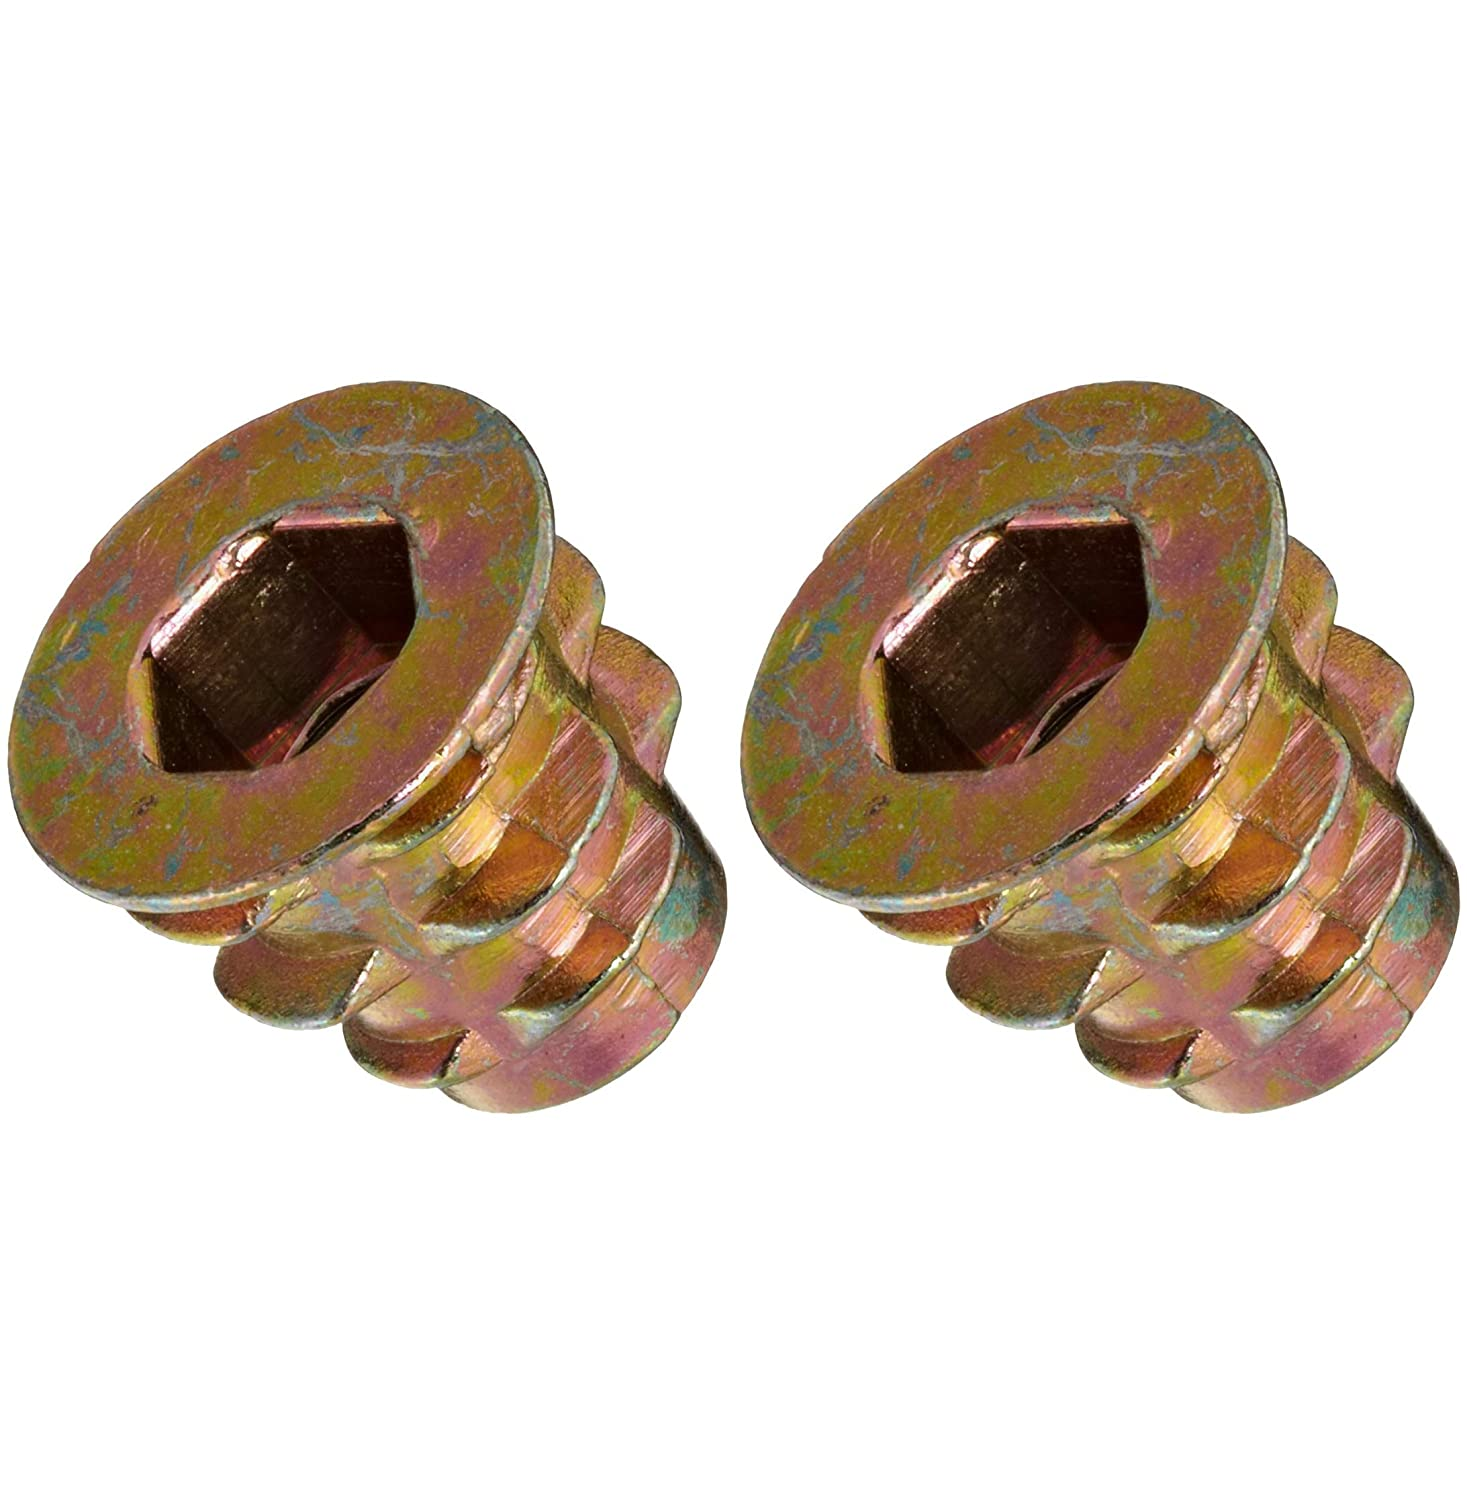 E-Z LOK 10-24 Die Cast Zinc Alloy Hex-Drive Threaded Insert for Wood 25 Pieces